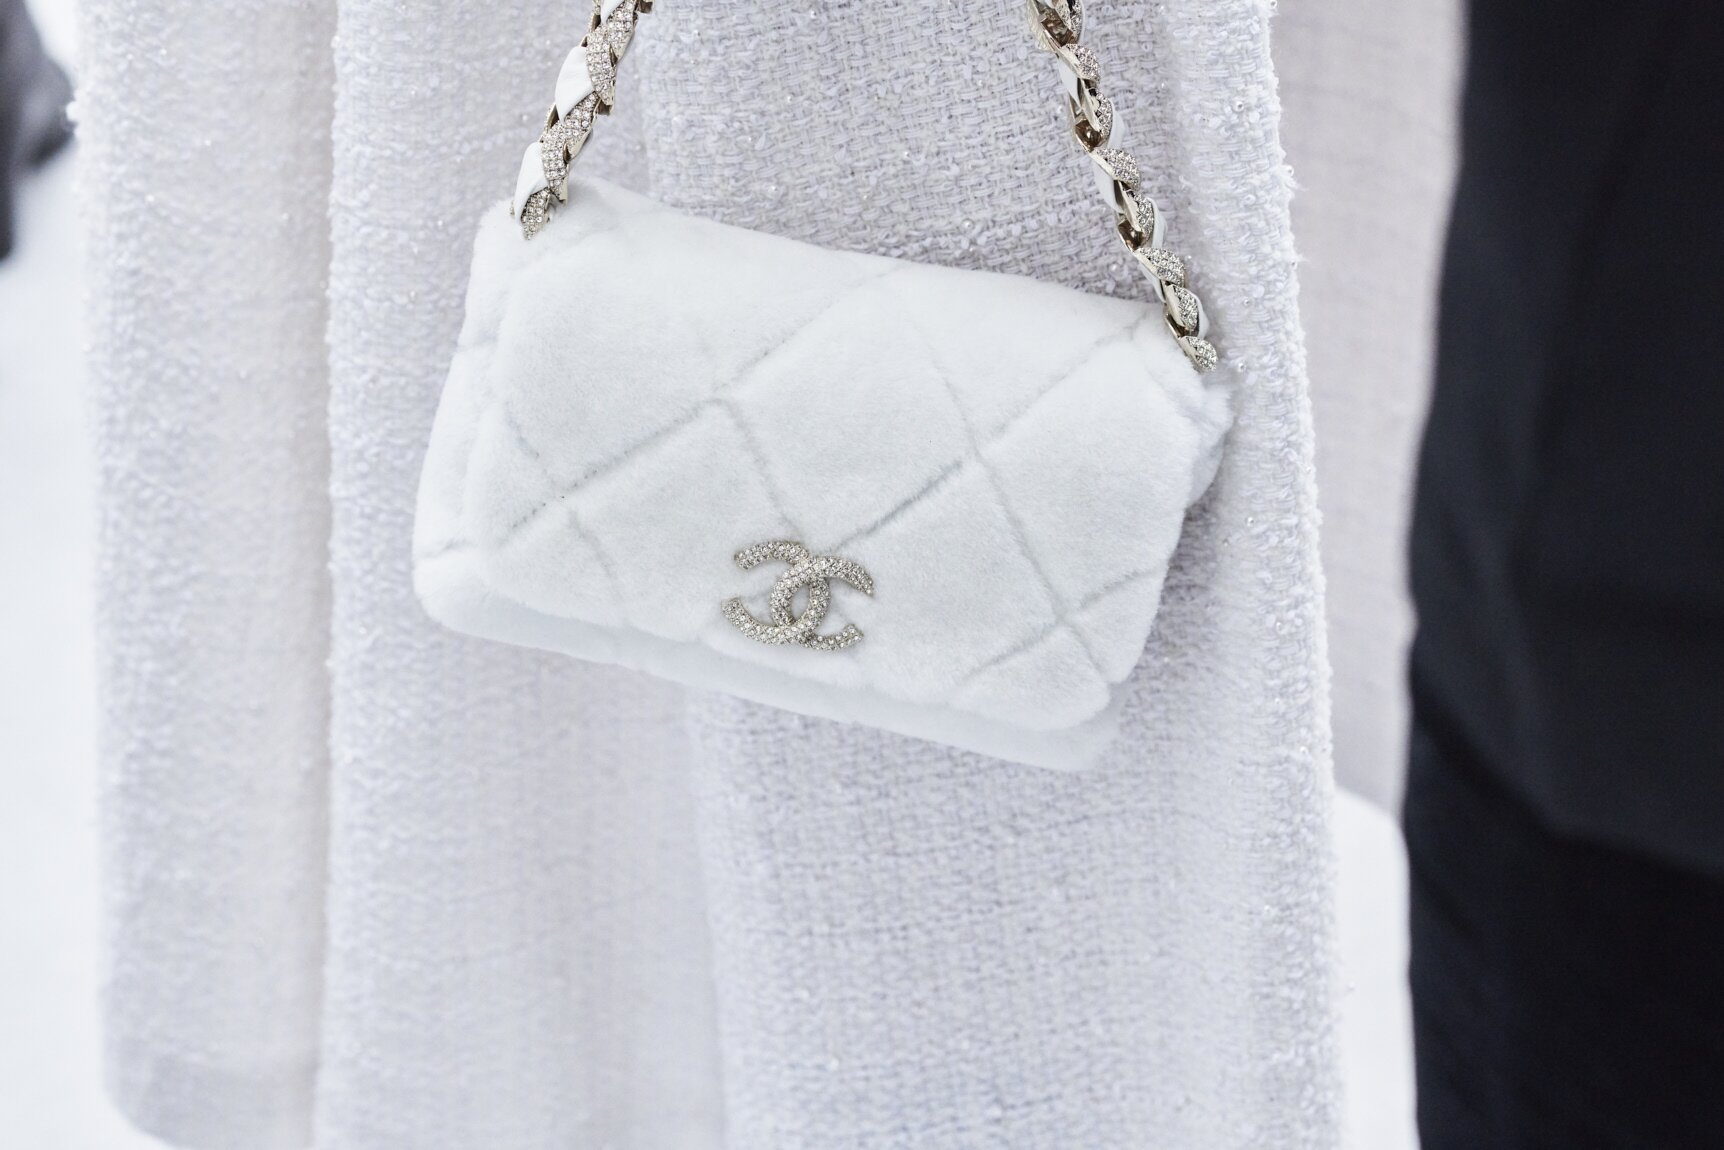 Chanel Bag Trends